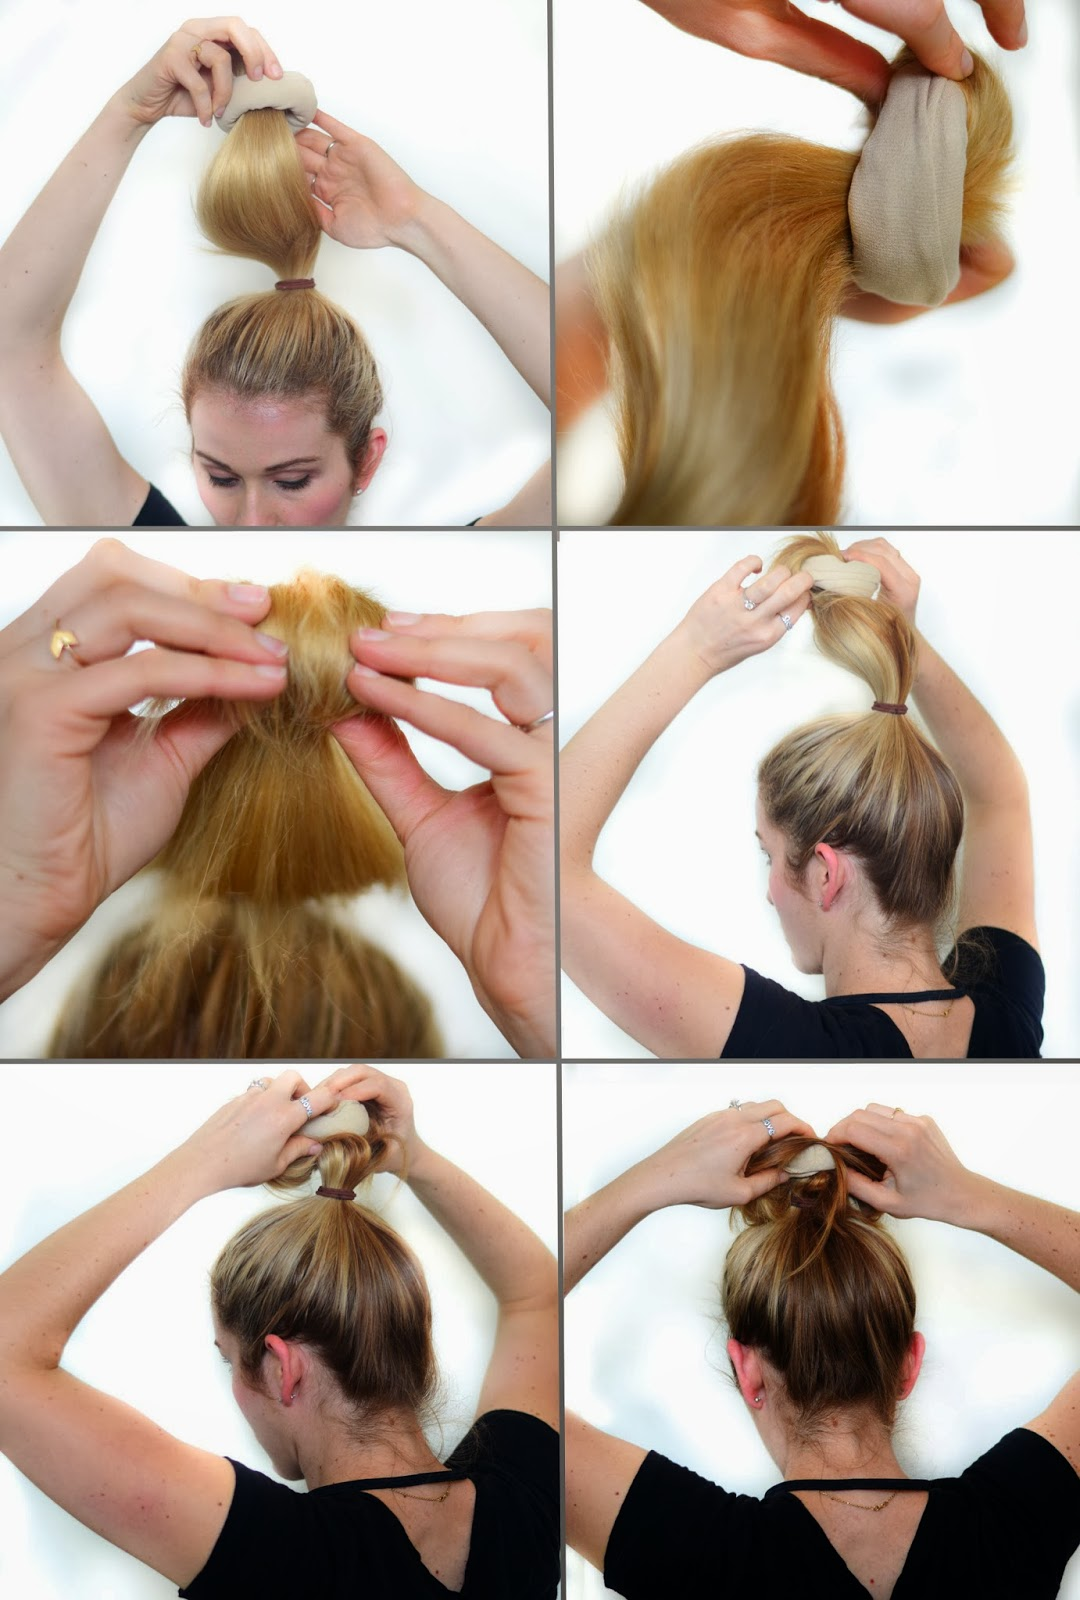 Oct 02,  · To do a sock bun with short hair, start by choosing a small sock that matches your hair color and cutting the toe portion off. Next, turn the sock inside-out and roll it up to the elastic. Then, add a little gel or dry shampoo to your hair for grip, pull it up into a .